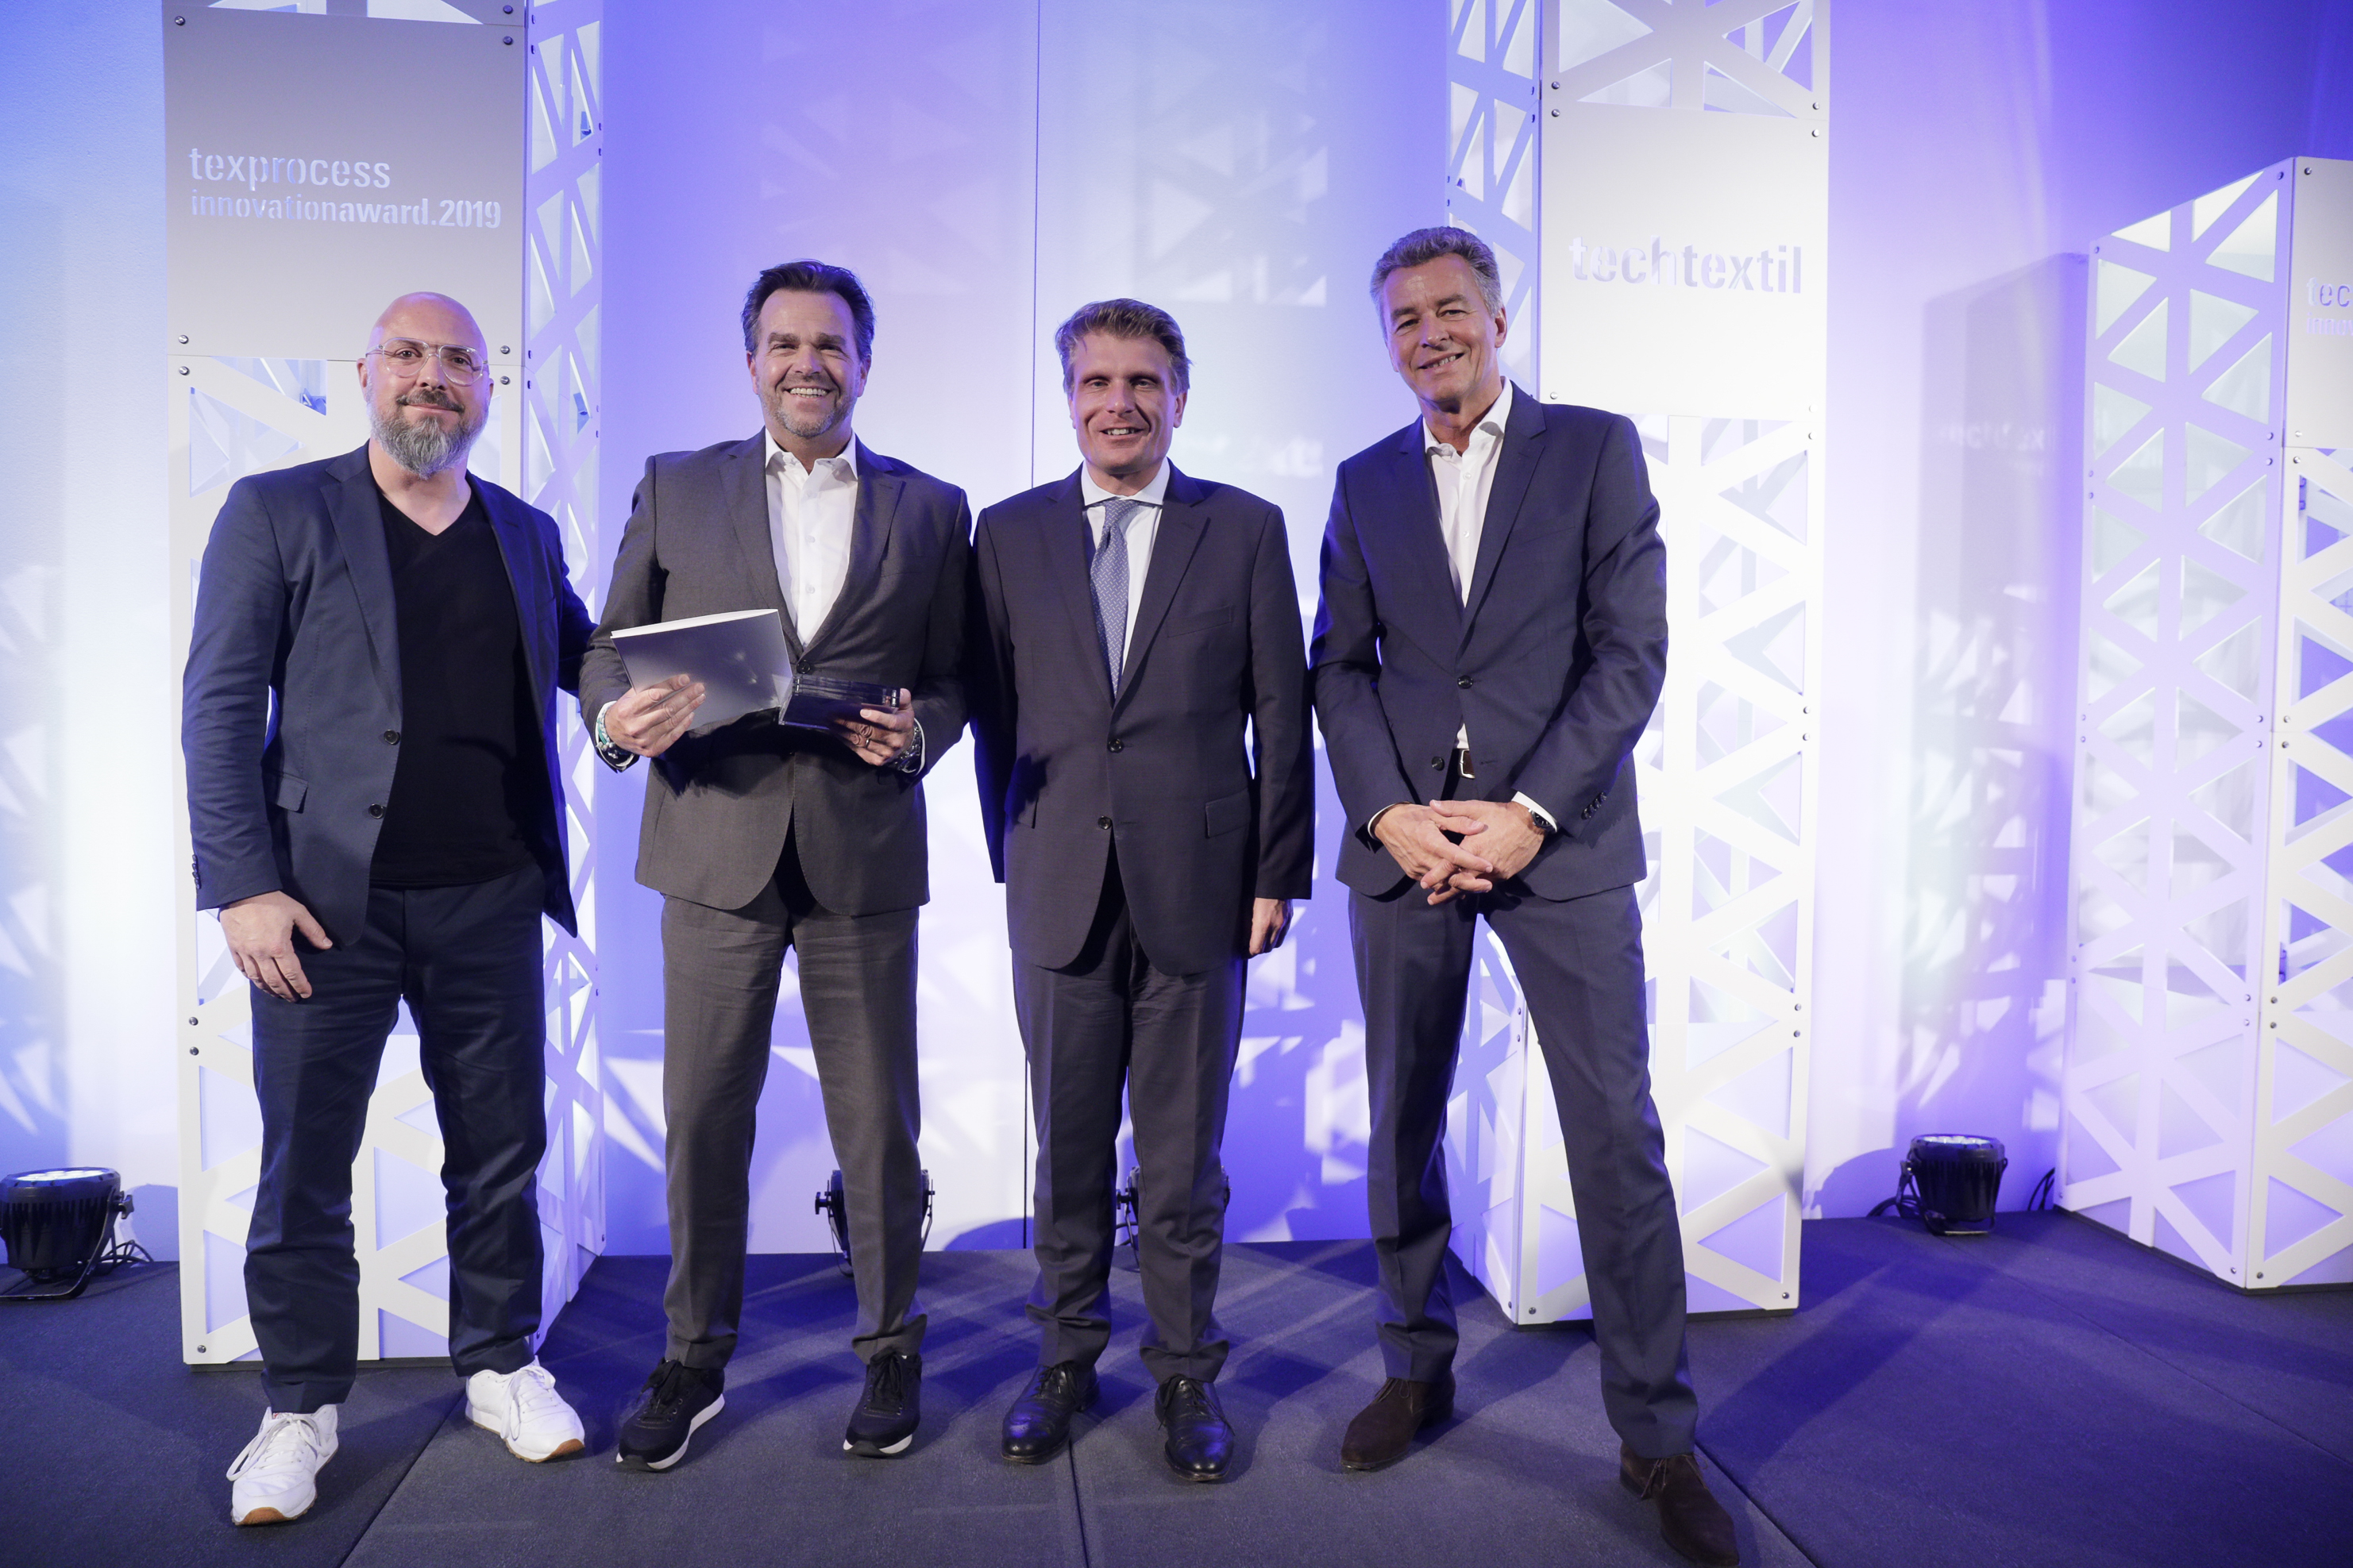 Texprocess Innovations Award